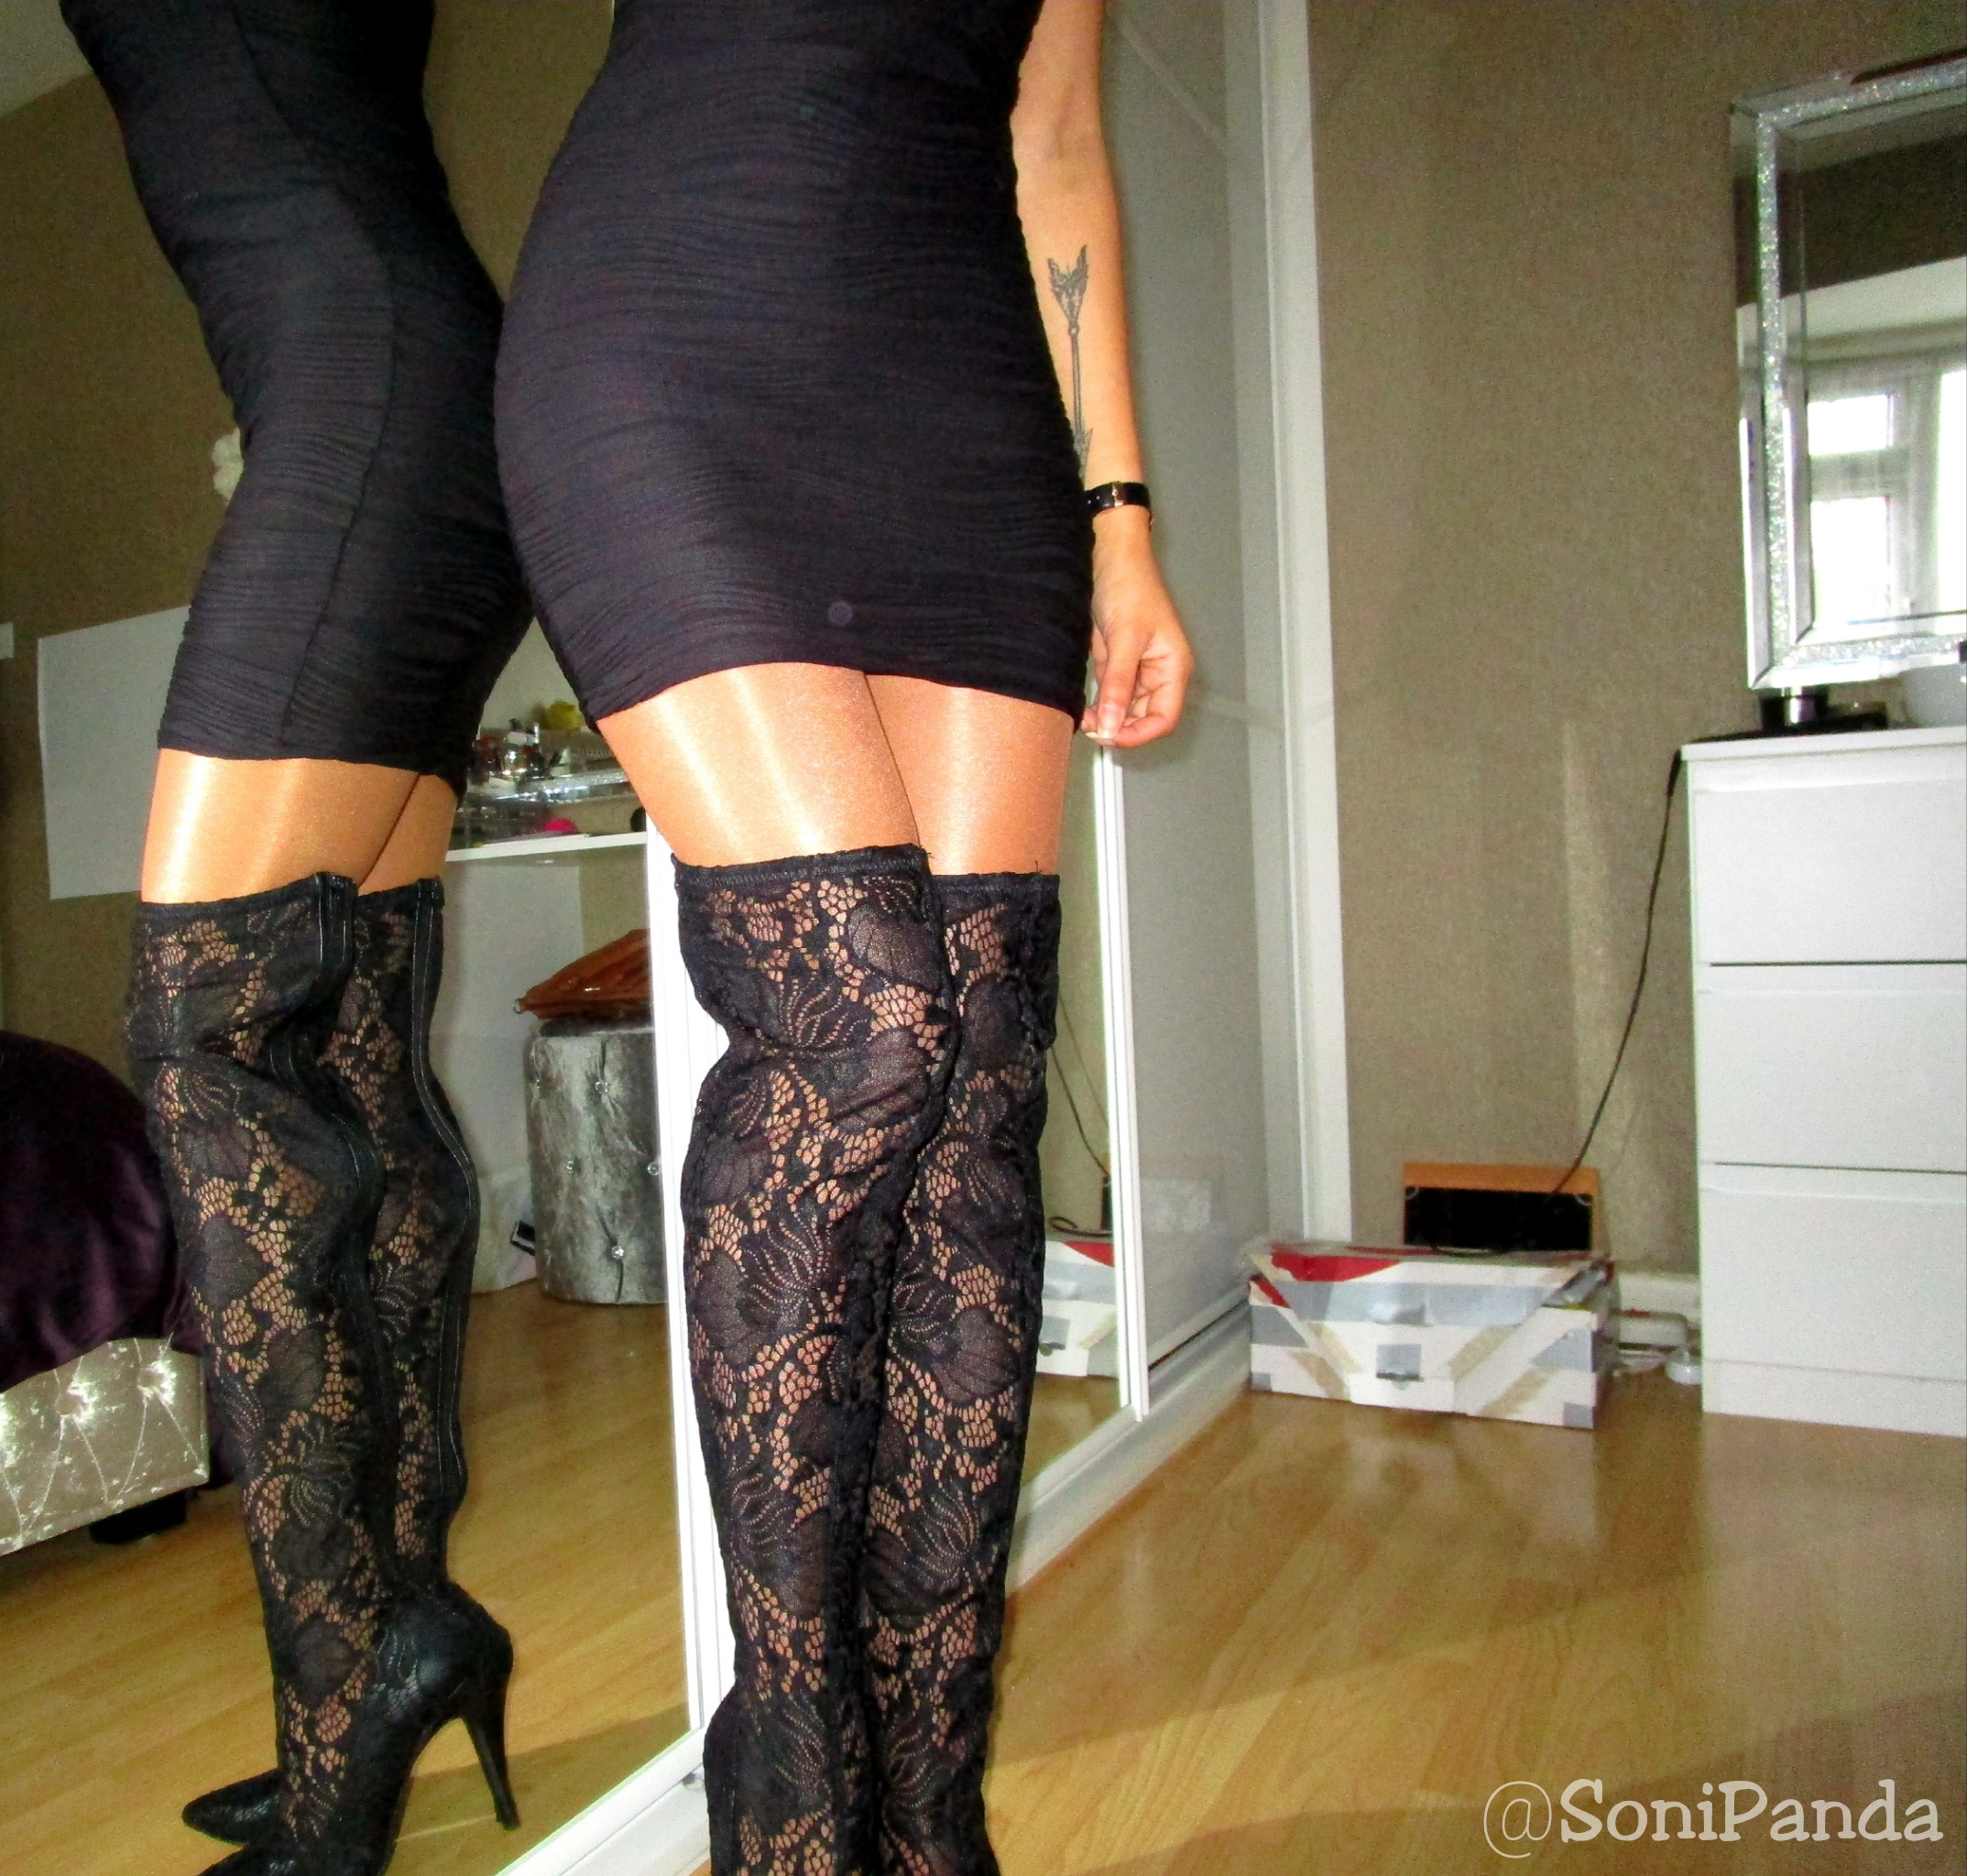 96a6bf2013b Yuelie High Gloss Tights – sonipandablog